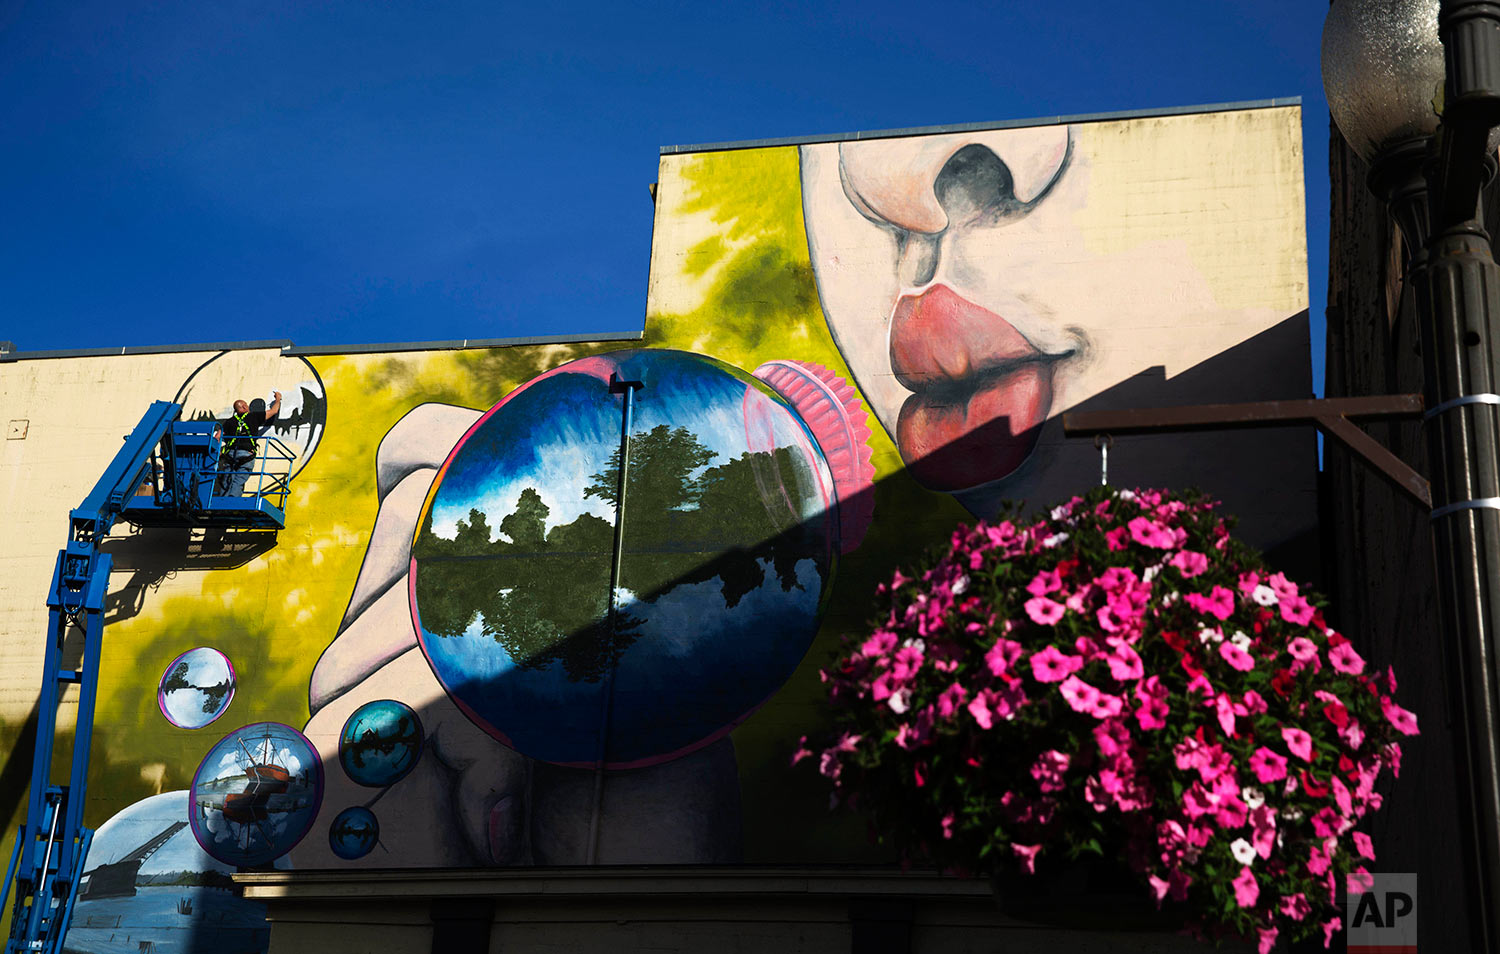 Artist Douglas Orr paints a mural on a building in Aberdeen, Wash., Friday, June 16, 2017. Orr has been painting a block-long mural of a little girl blowing bubbles, each circle the scene of an imagined, hopeful future. Nearby hangs one of the baskets of pink petunias that decorate light posts all over town, watered regularly by residents trying to make their city feel alive again. (AP Photo/David Goldman)